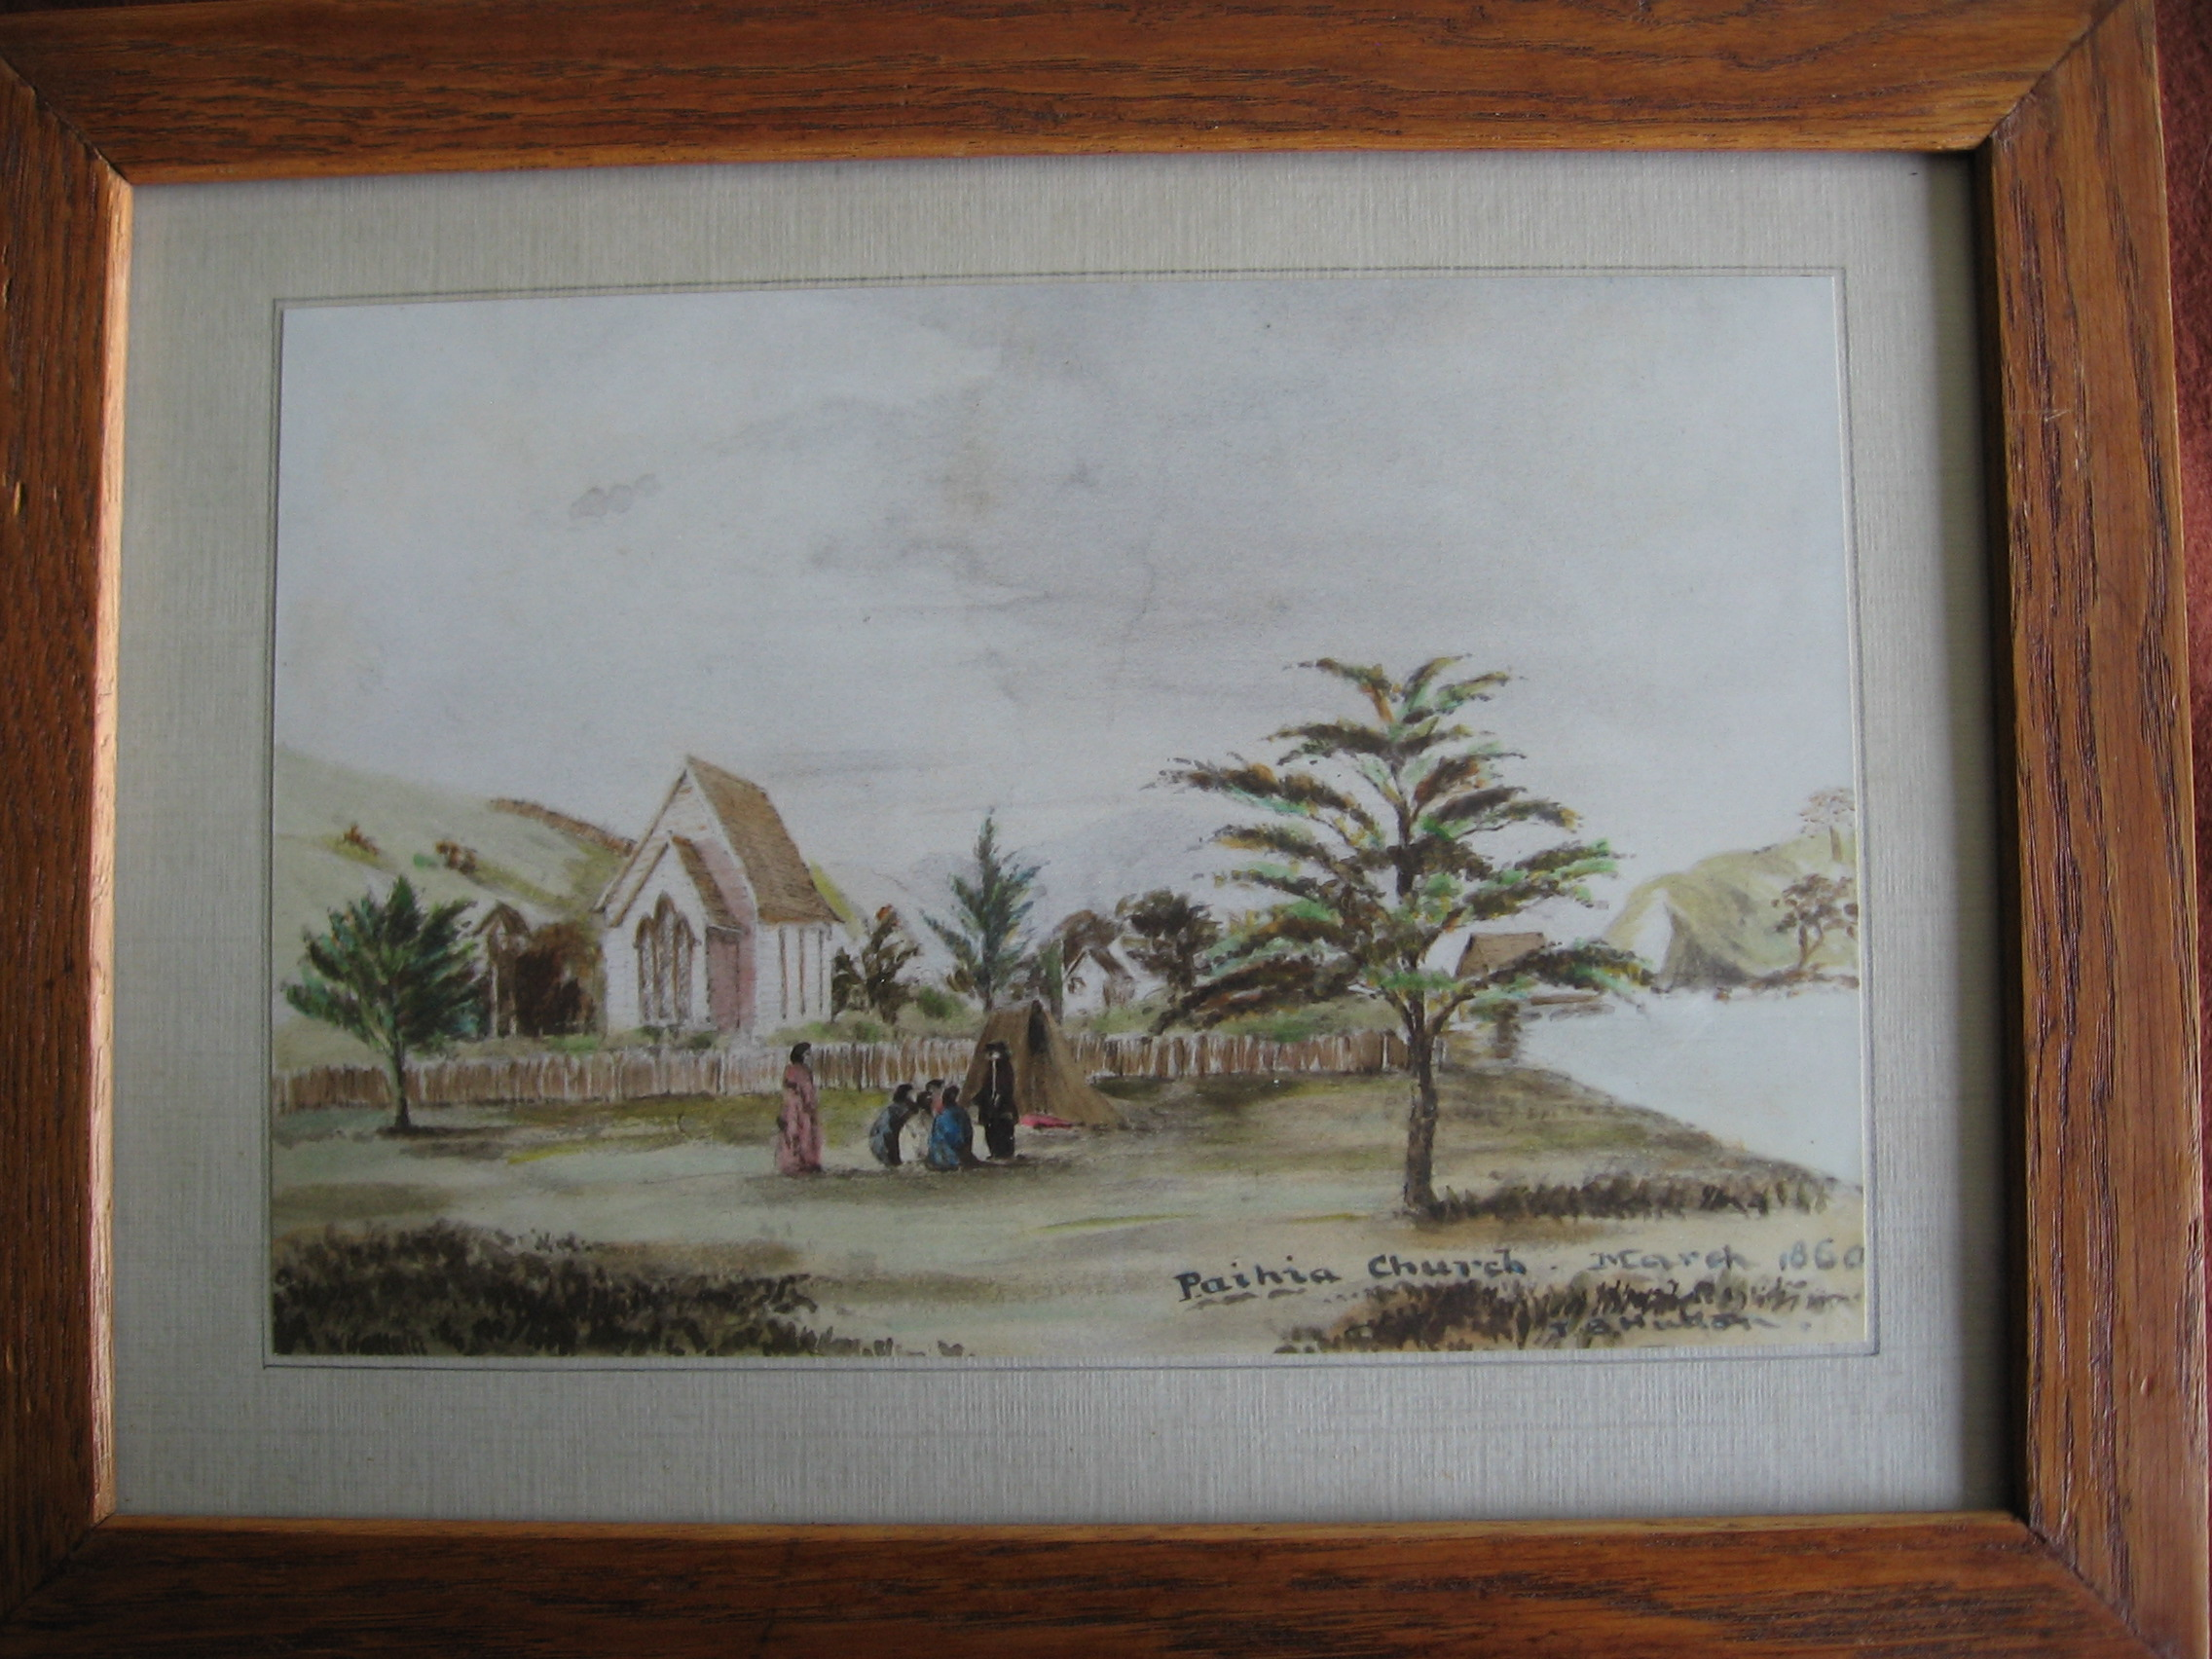 PAIHIA CHURCH WATERCOLOUR